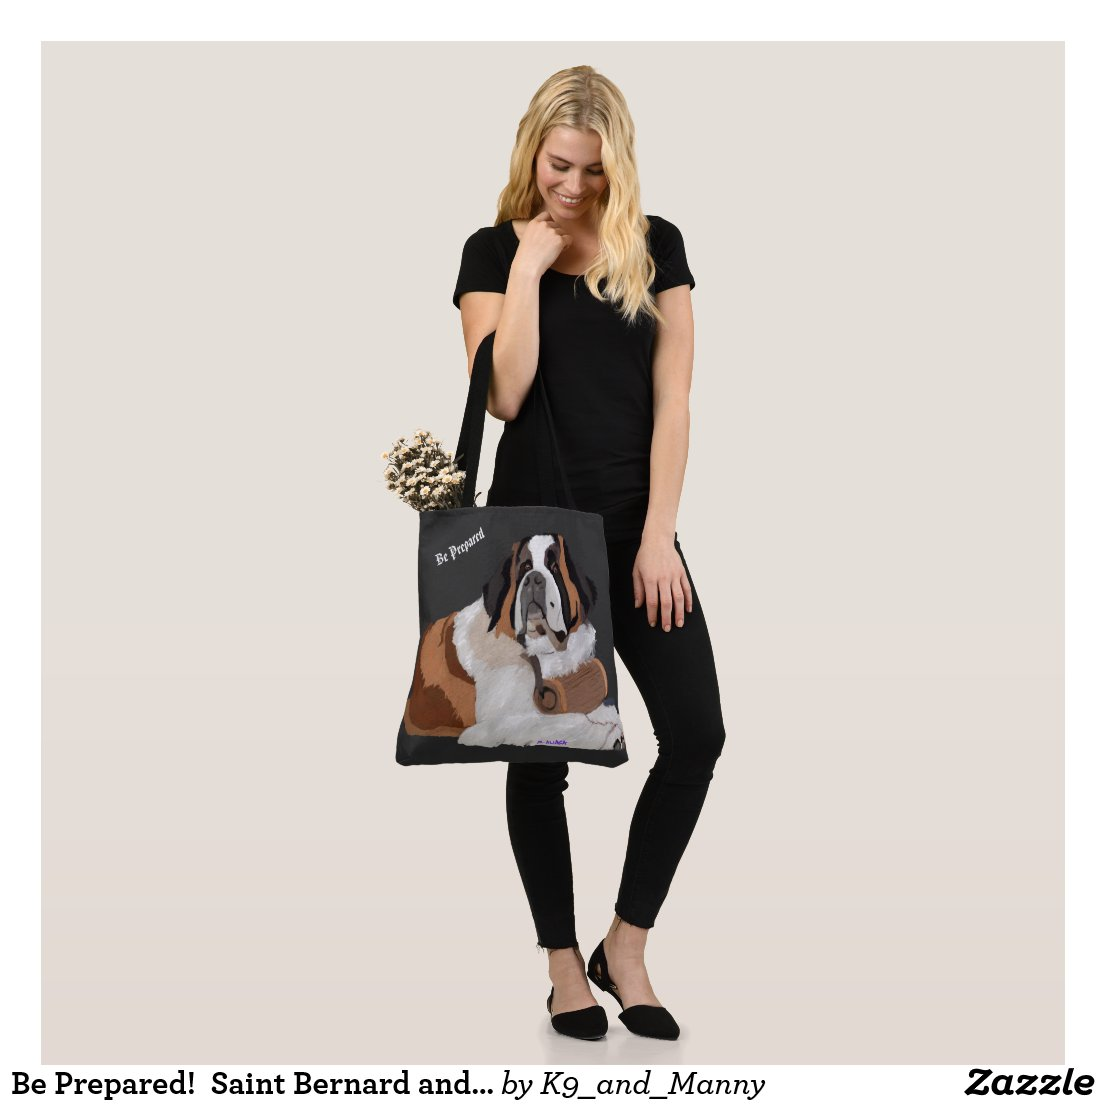 Be Prepared!  Saint Bernard and Keg Tote Bag